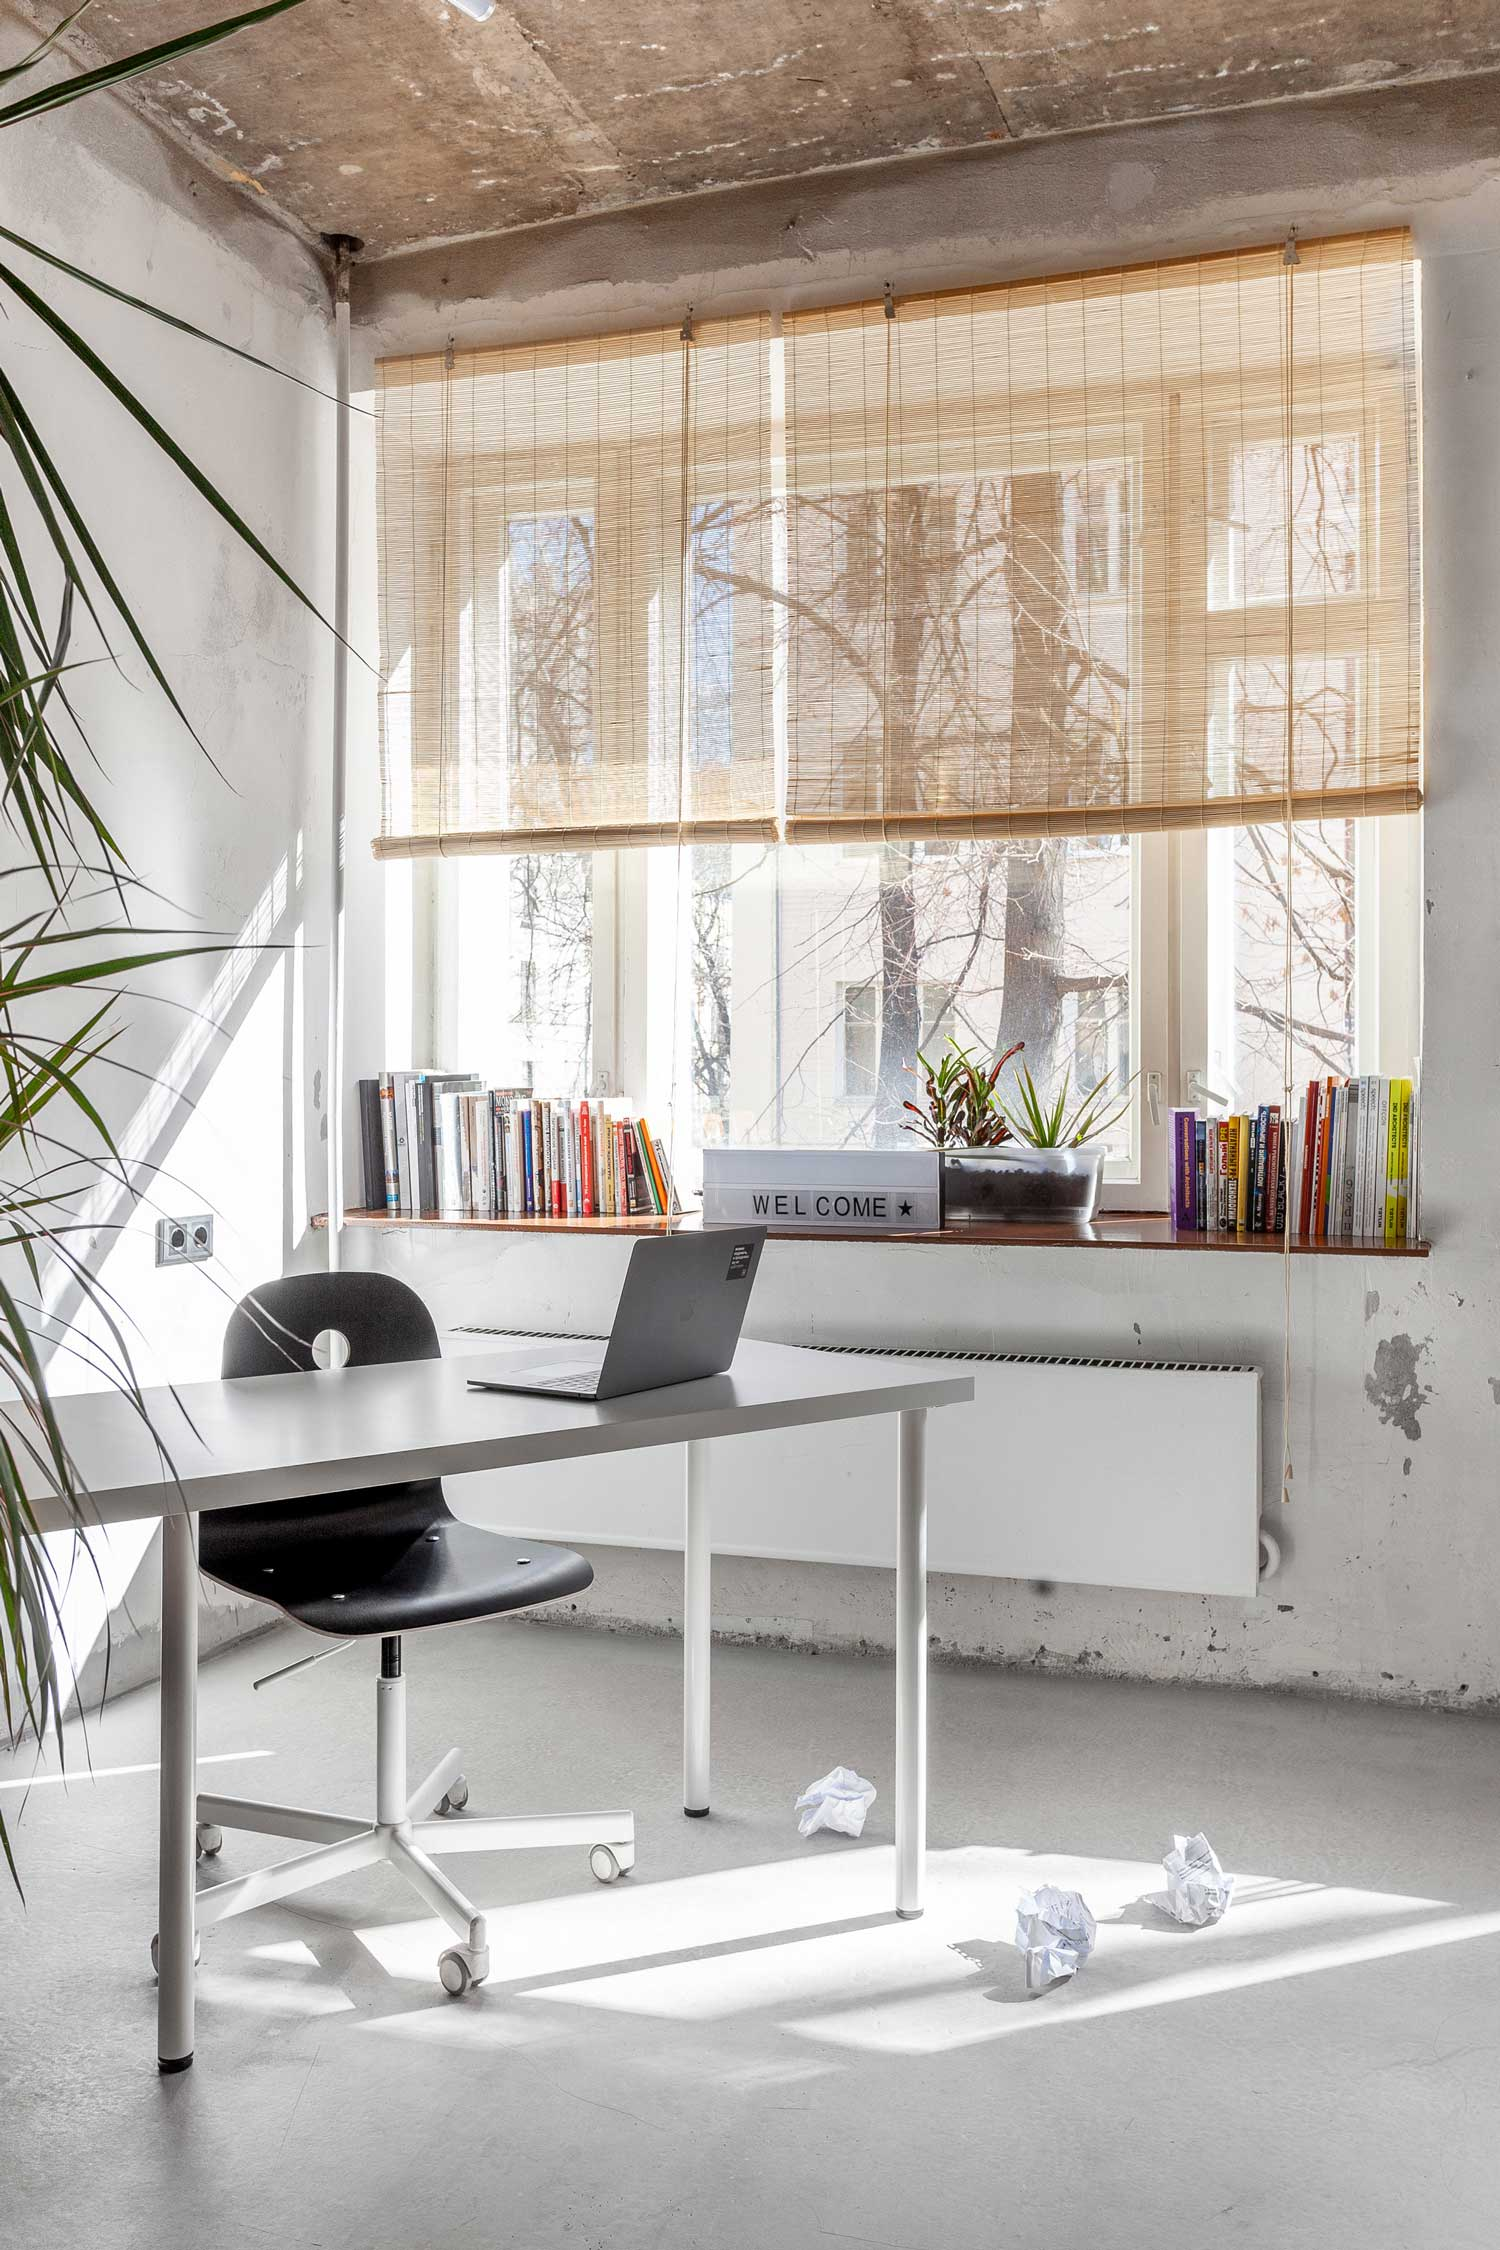 PR Agency's Moscow Office by Dvekati.